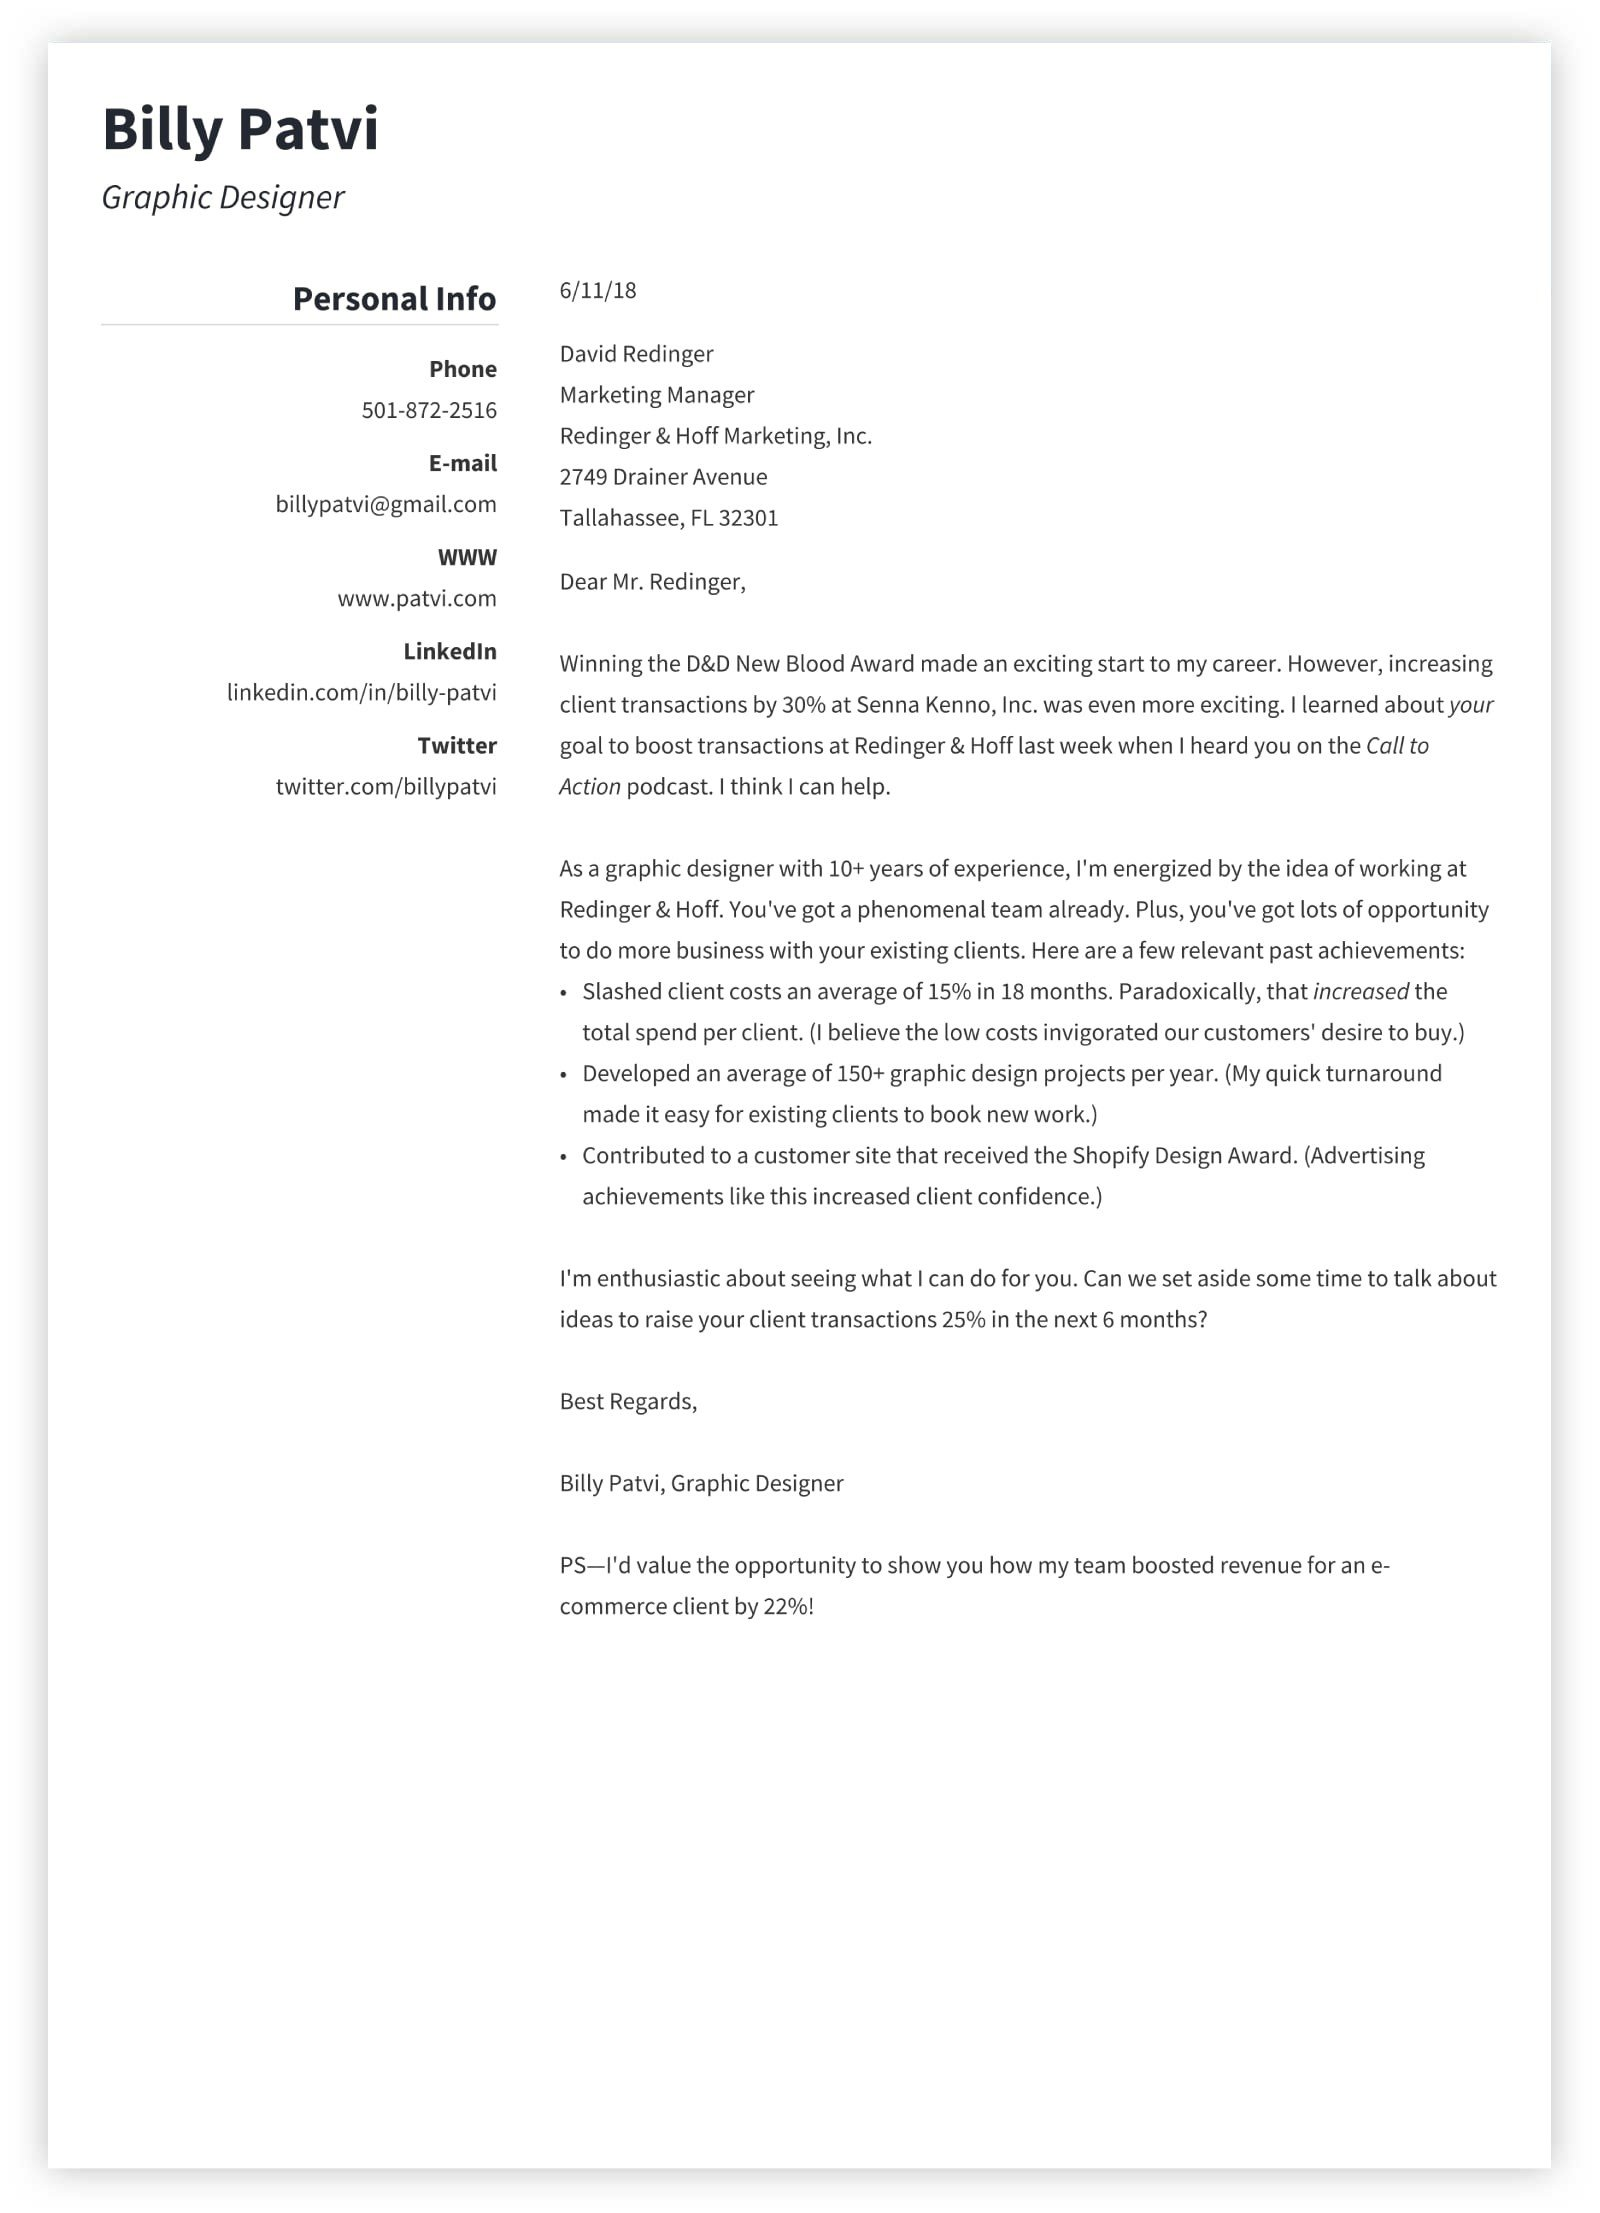 Application Letter Good Example, Graphic Design Cover Letter, Application Letter Good Example